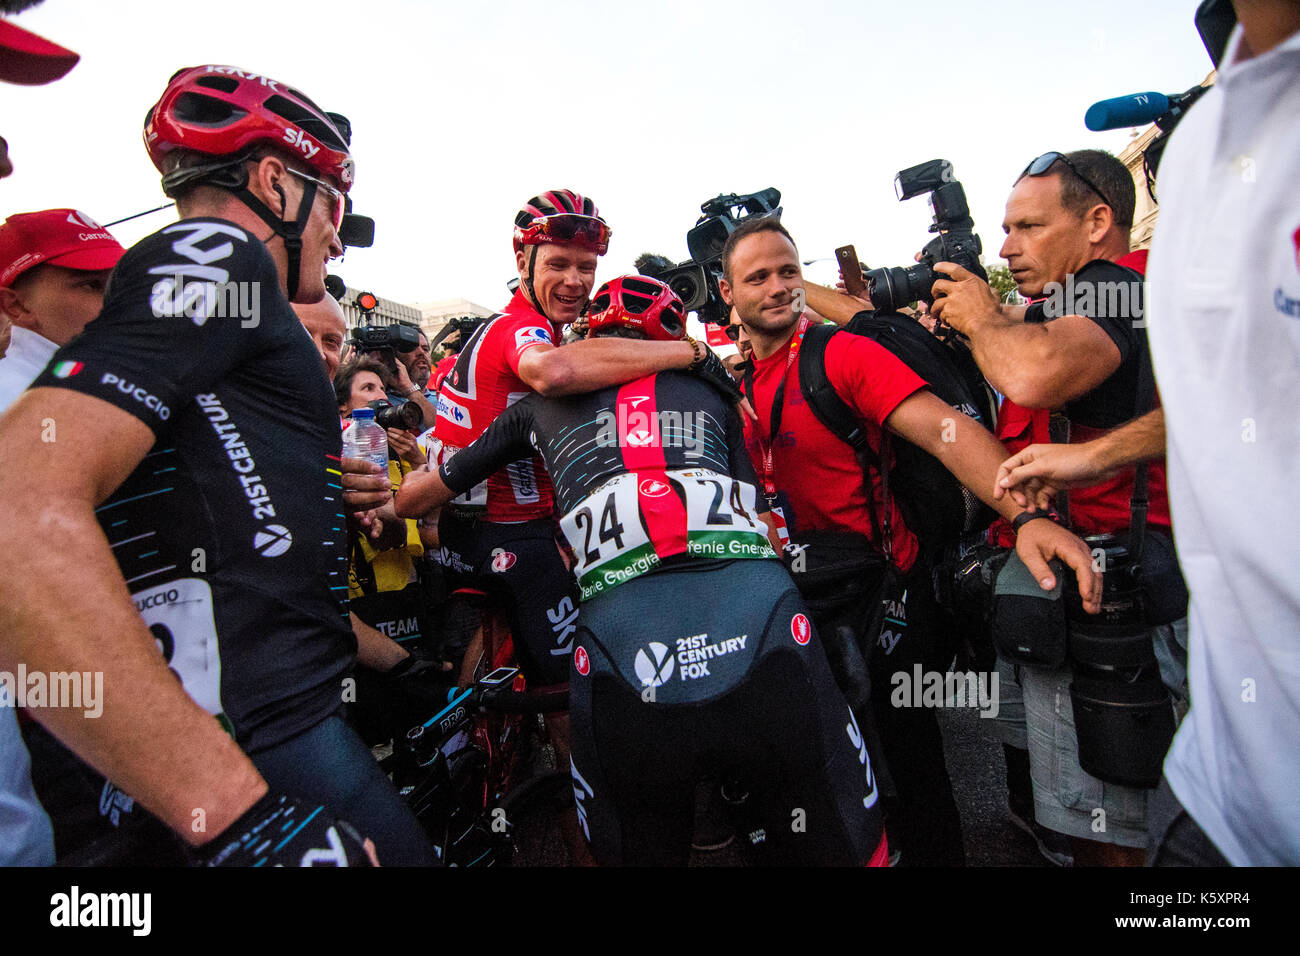 Madrid, Spain. 10th September, 2017. Chris Froome (Team Sky) celebrates his victory at Tour of Spain (Vuelta a España) between Madrid and Madrid on September 10, 2017 in Madrid, Spain. ©David Gato/Alamy Live News - Stock Image